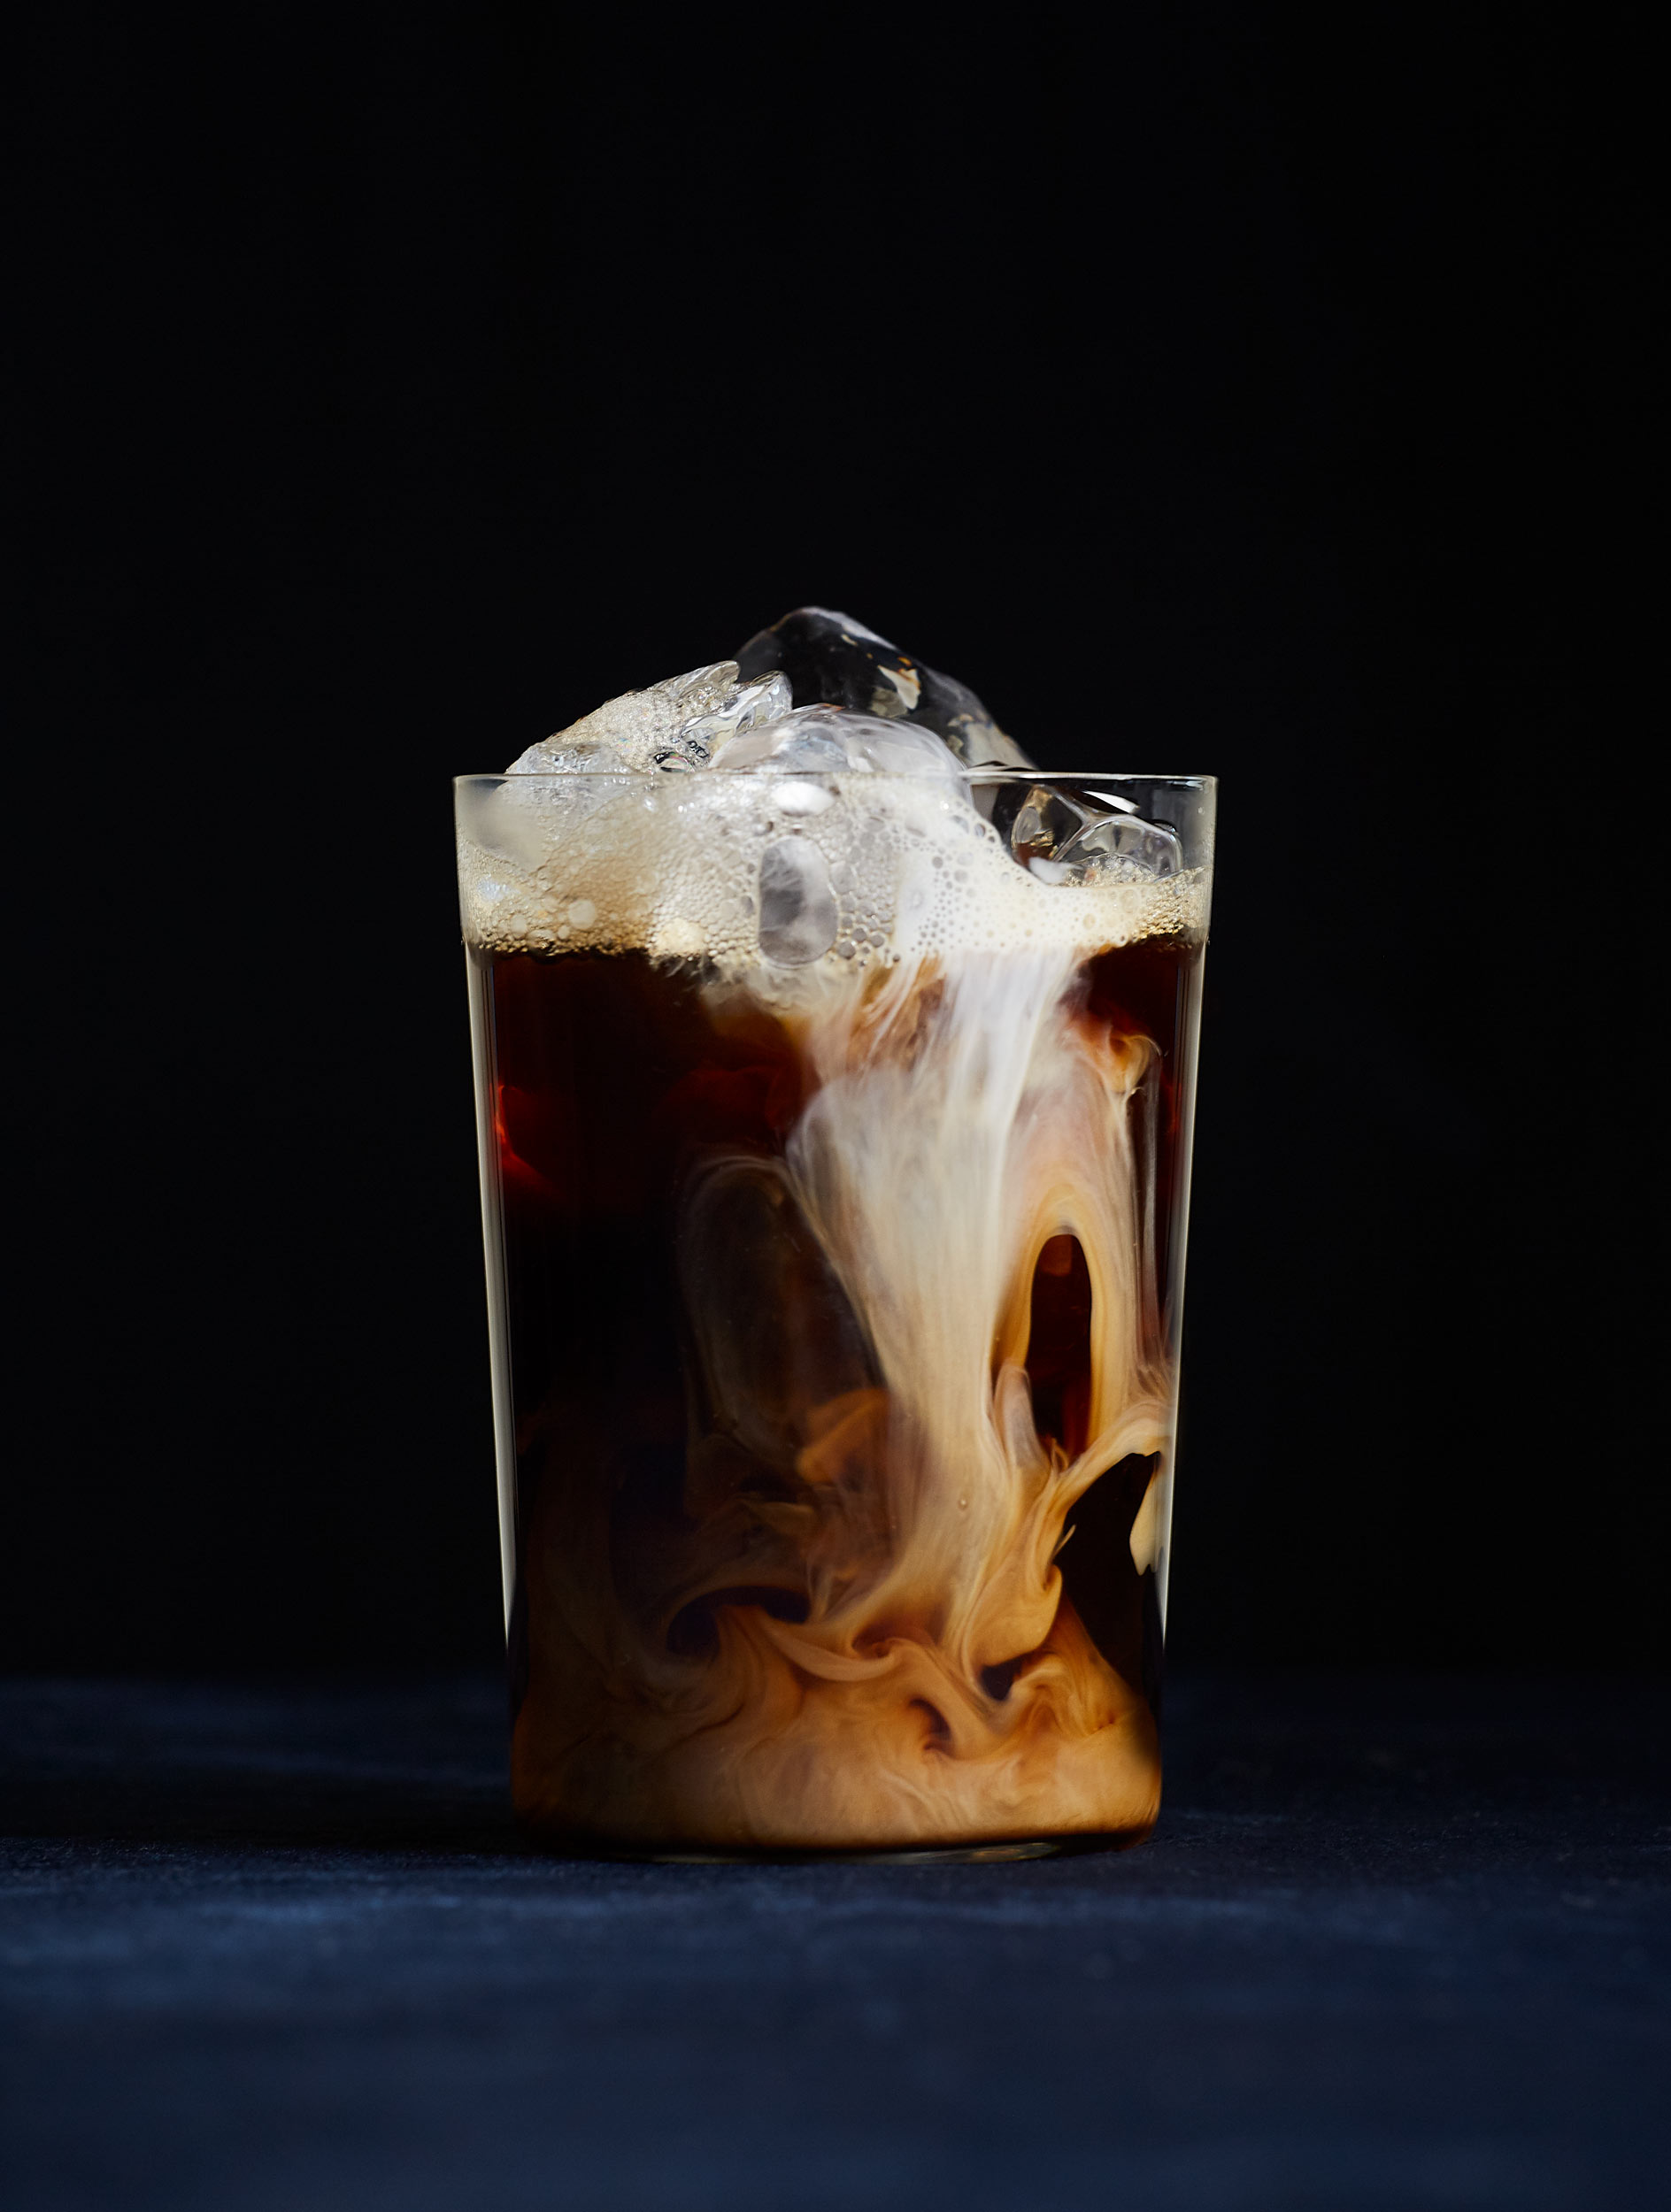 Iced Coffee photo by Chris Kessler Photography.  Chris Kessler is a freelance Photographer based in Milwaukee Wisconsin. Specializing in Food photography and portraiture.